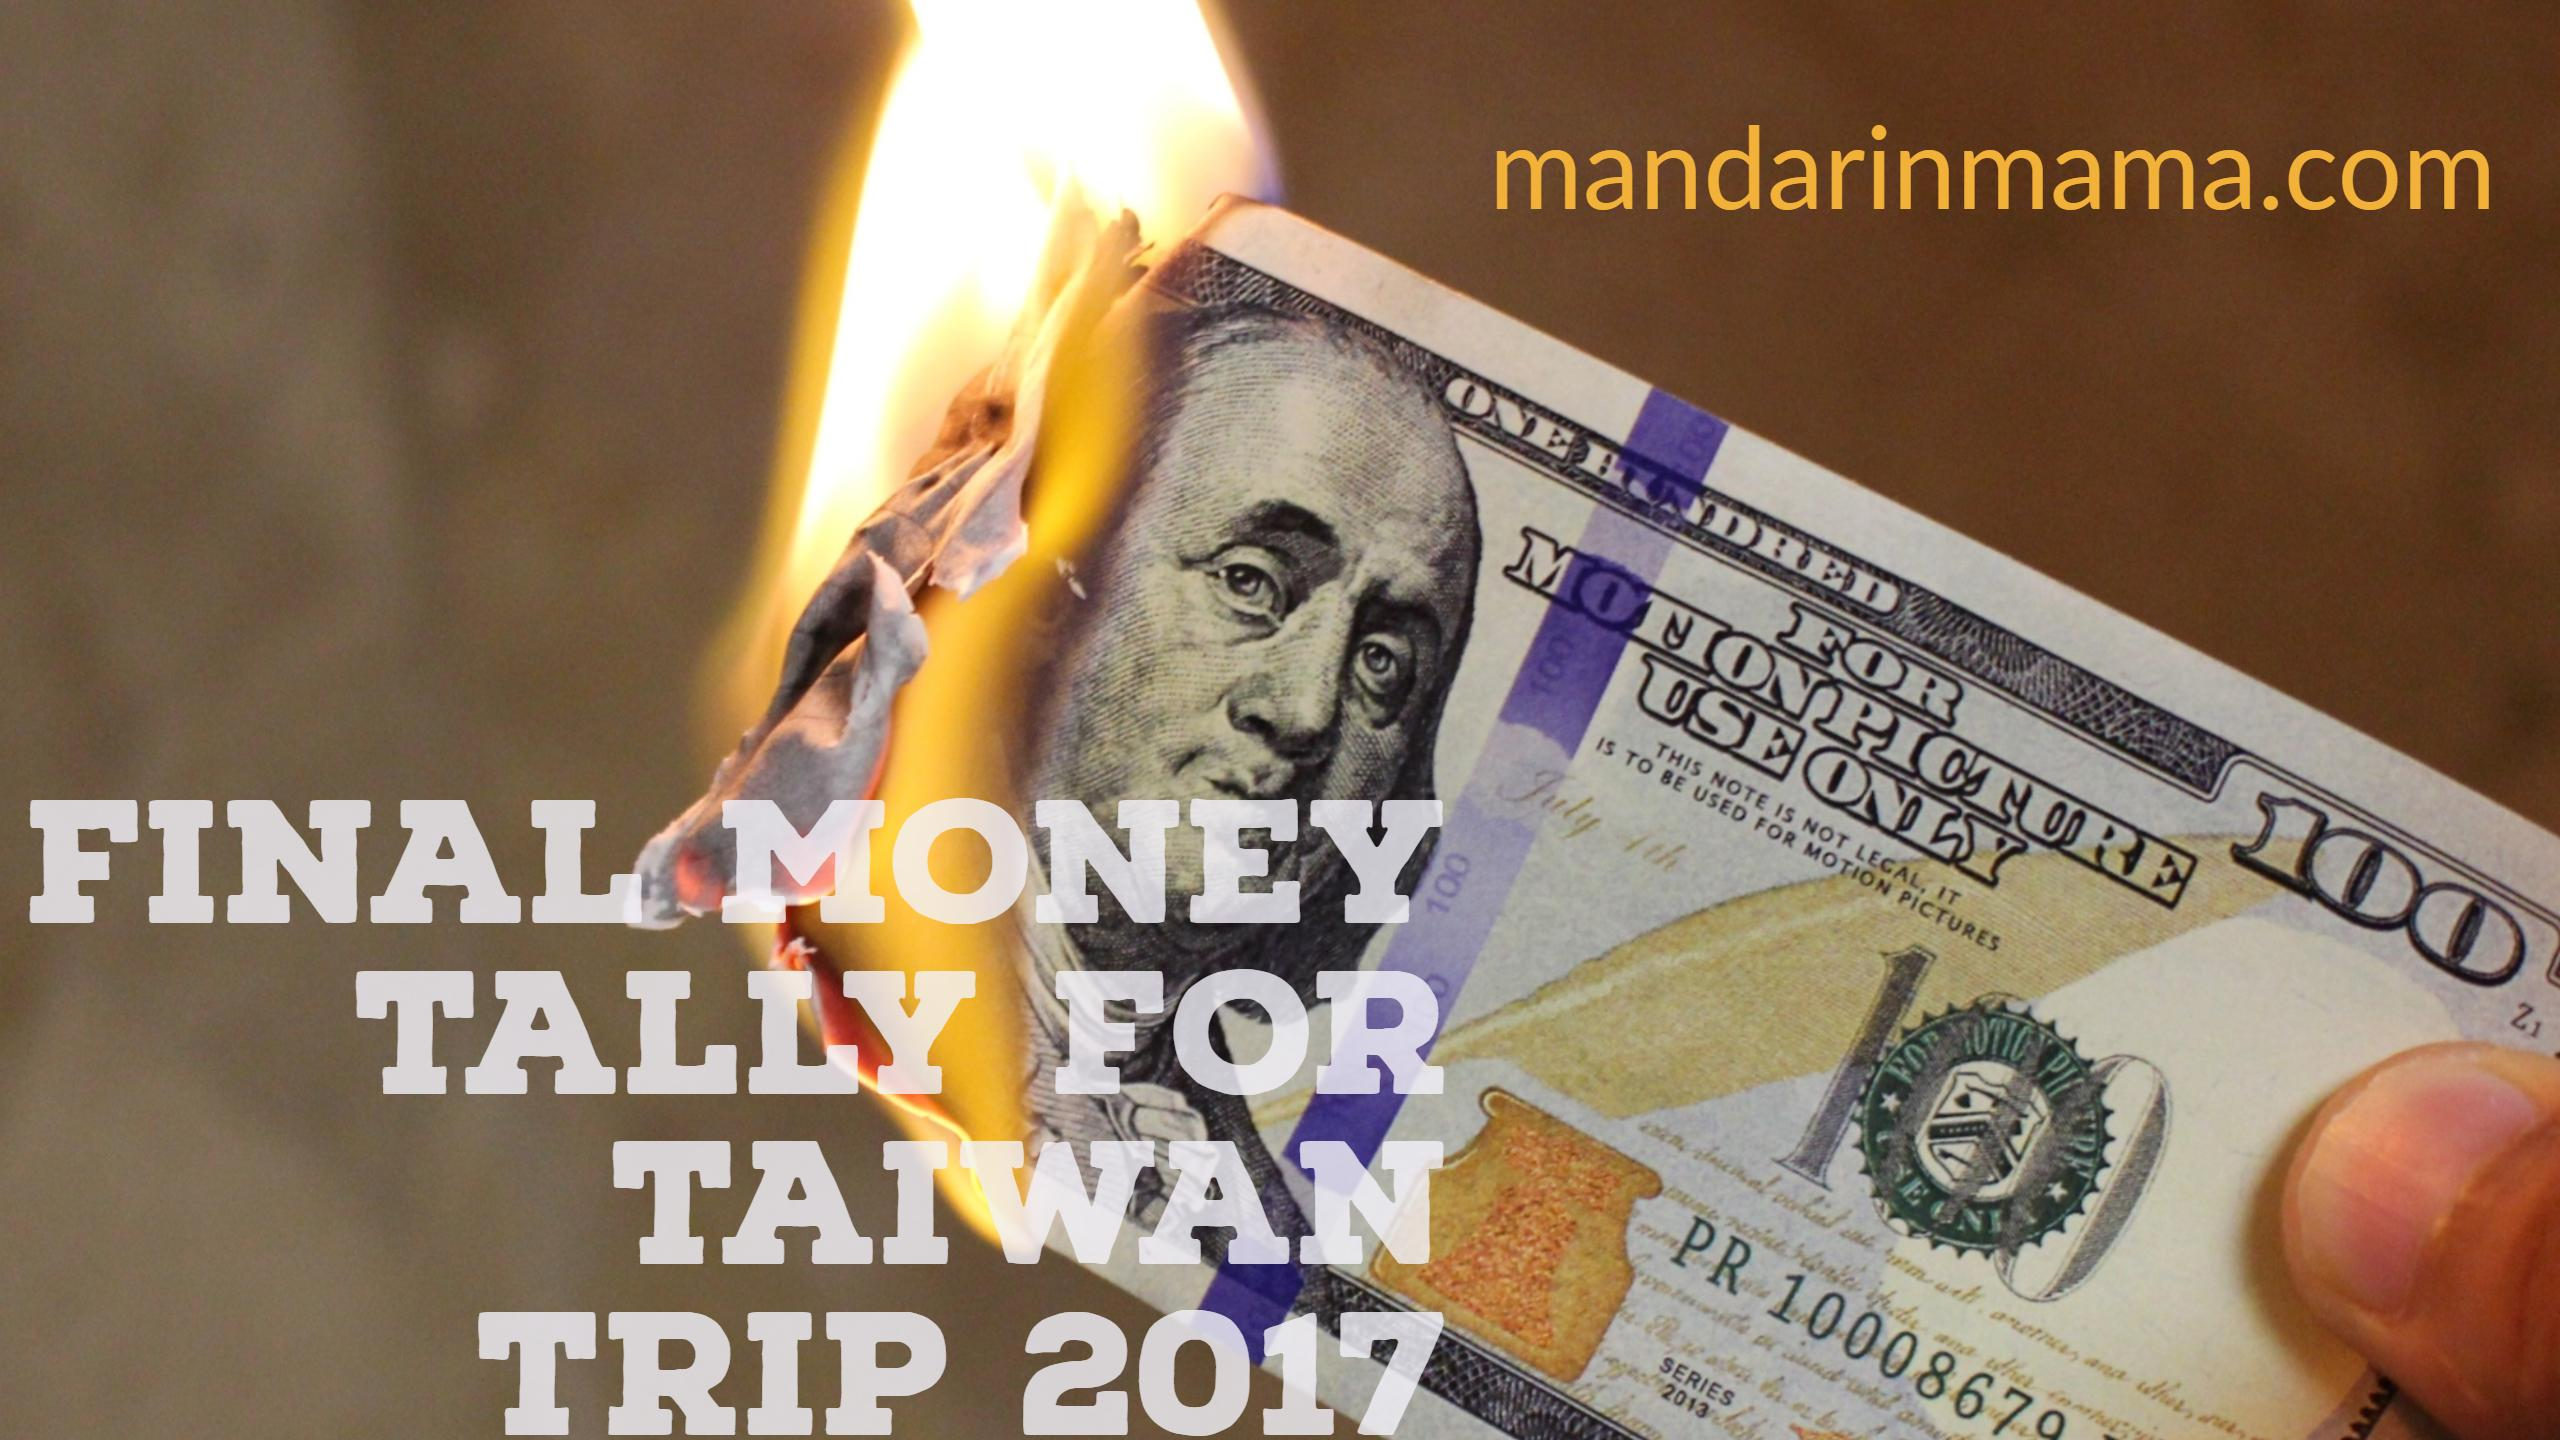 Final Money Tally For Taiwan Trip 2017